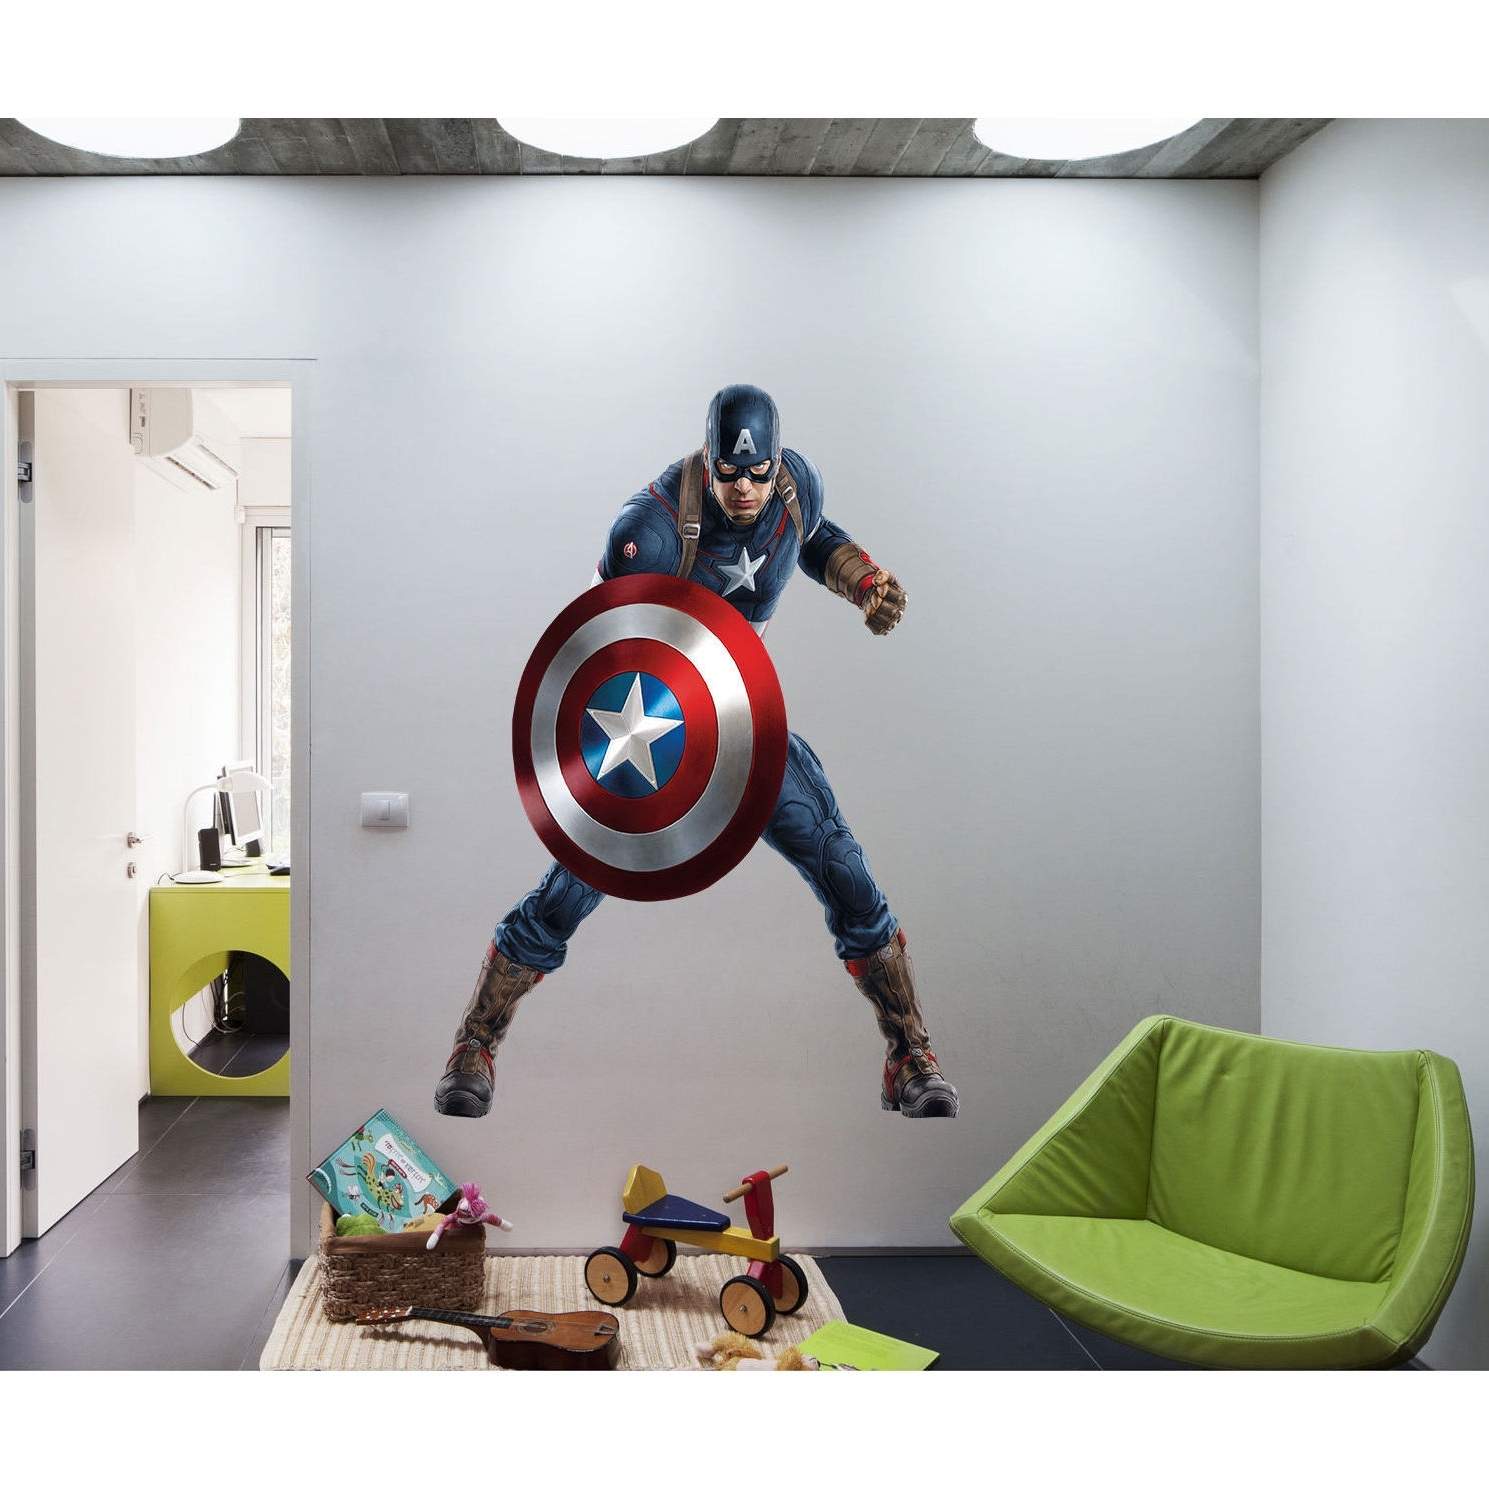 Shop Full Color Superhero Captain America Sticker, Decal, Wall Art Intended For Most Up To Date Captain America Wall Art (View 12 of 15)